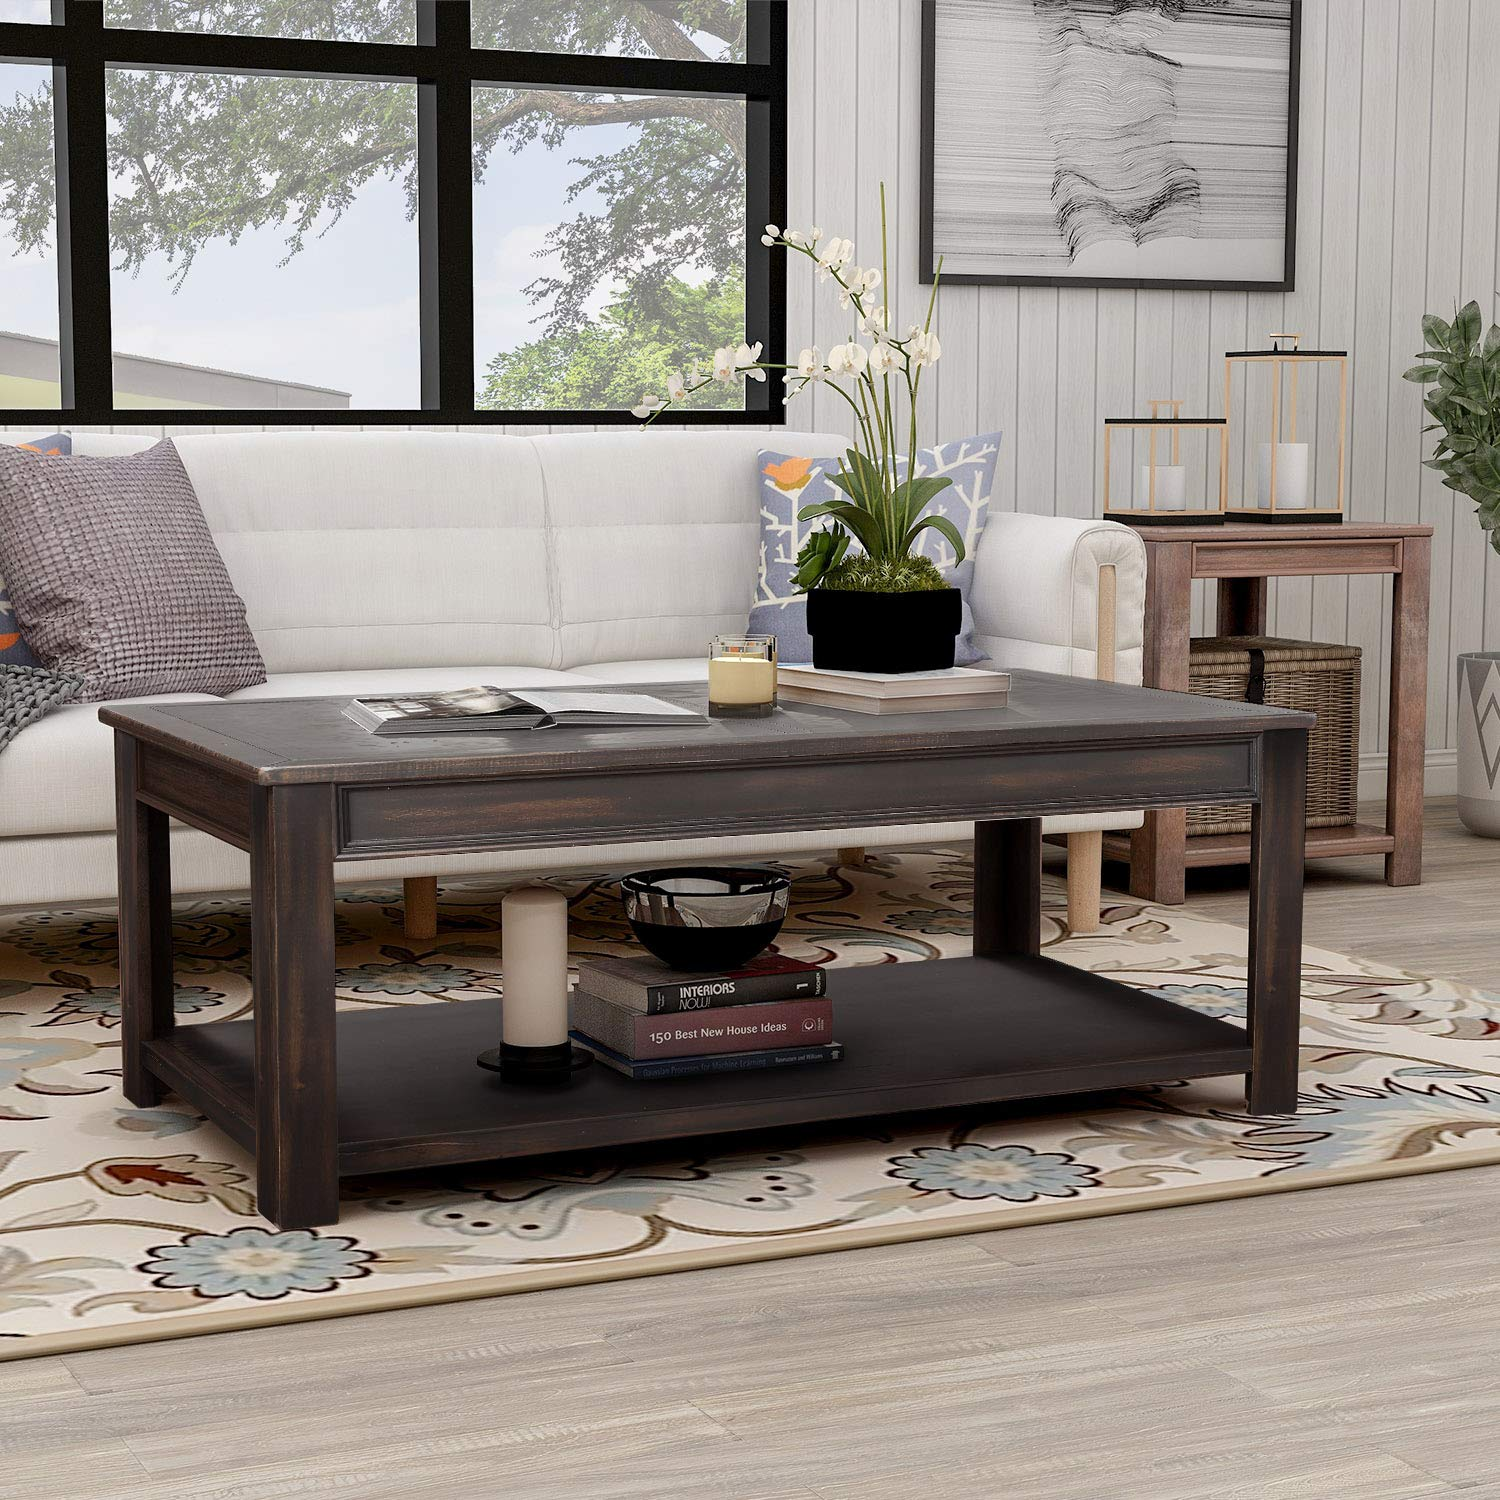 Rustic Style Living Room.Merax Rectangle Coffee Table Rustic Style Solid Wood Mdf Coffee Table For Living Room With Open Shelf Easy Assembly